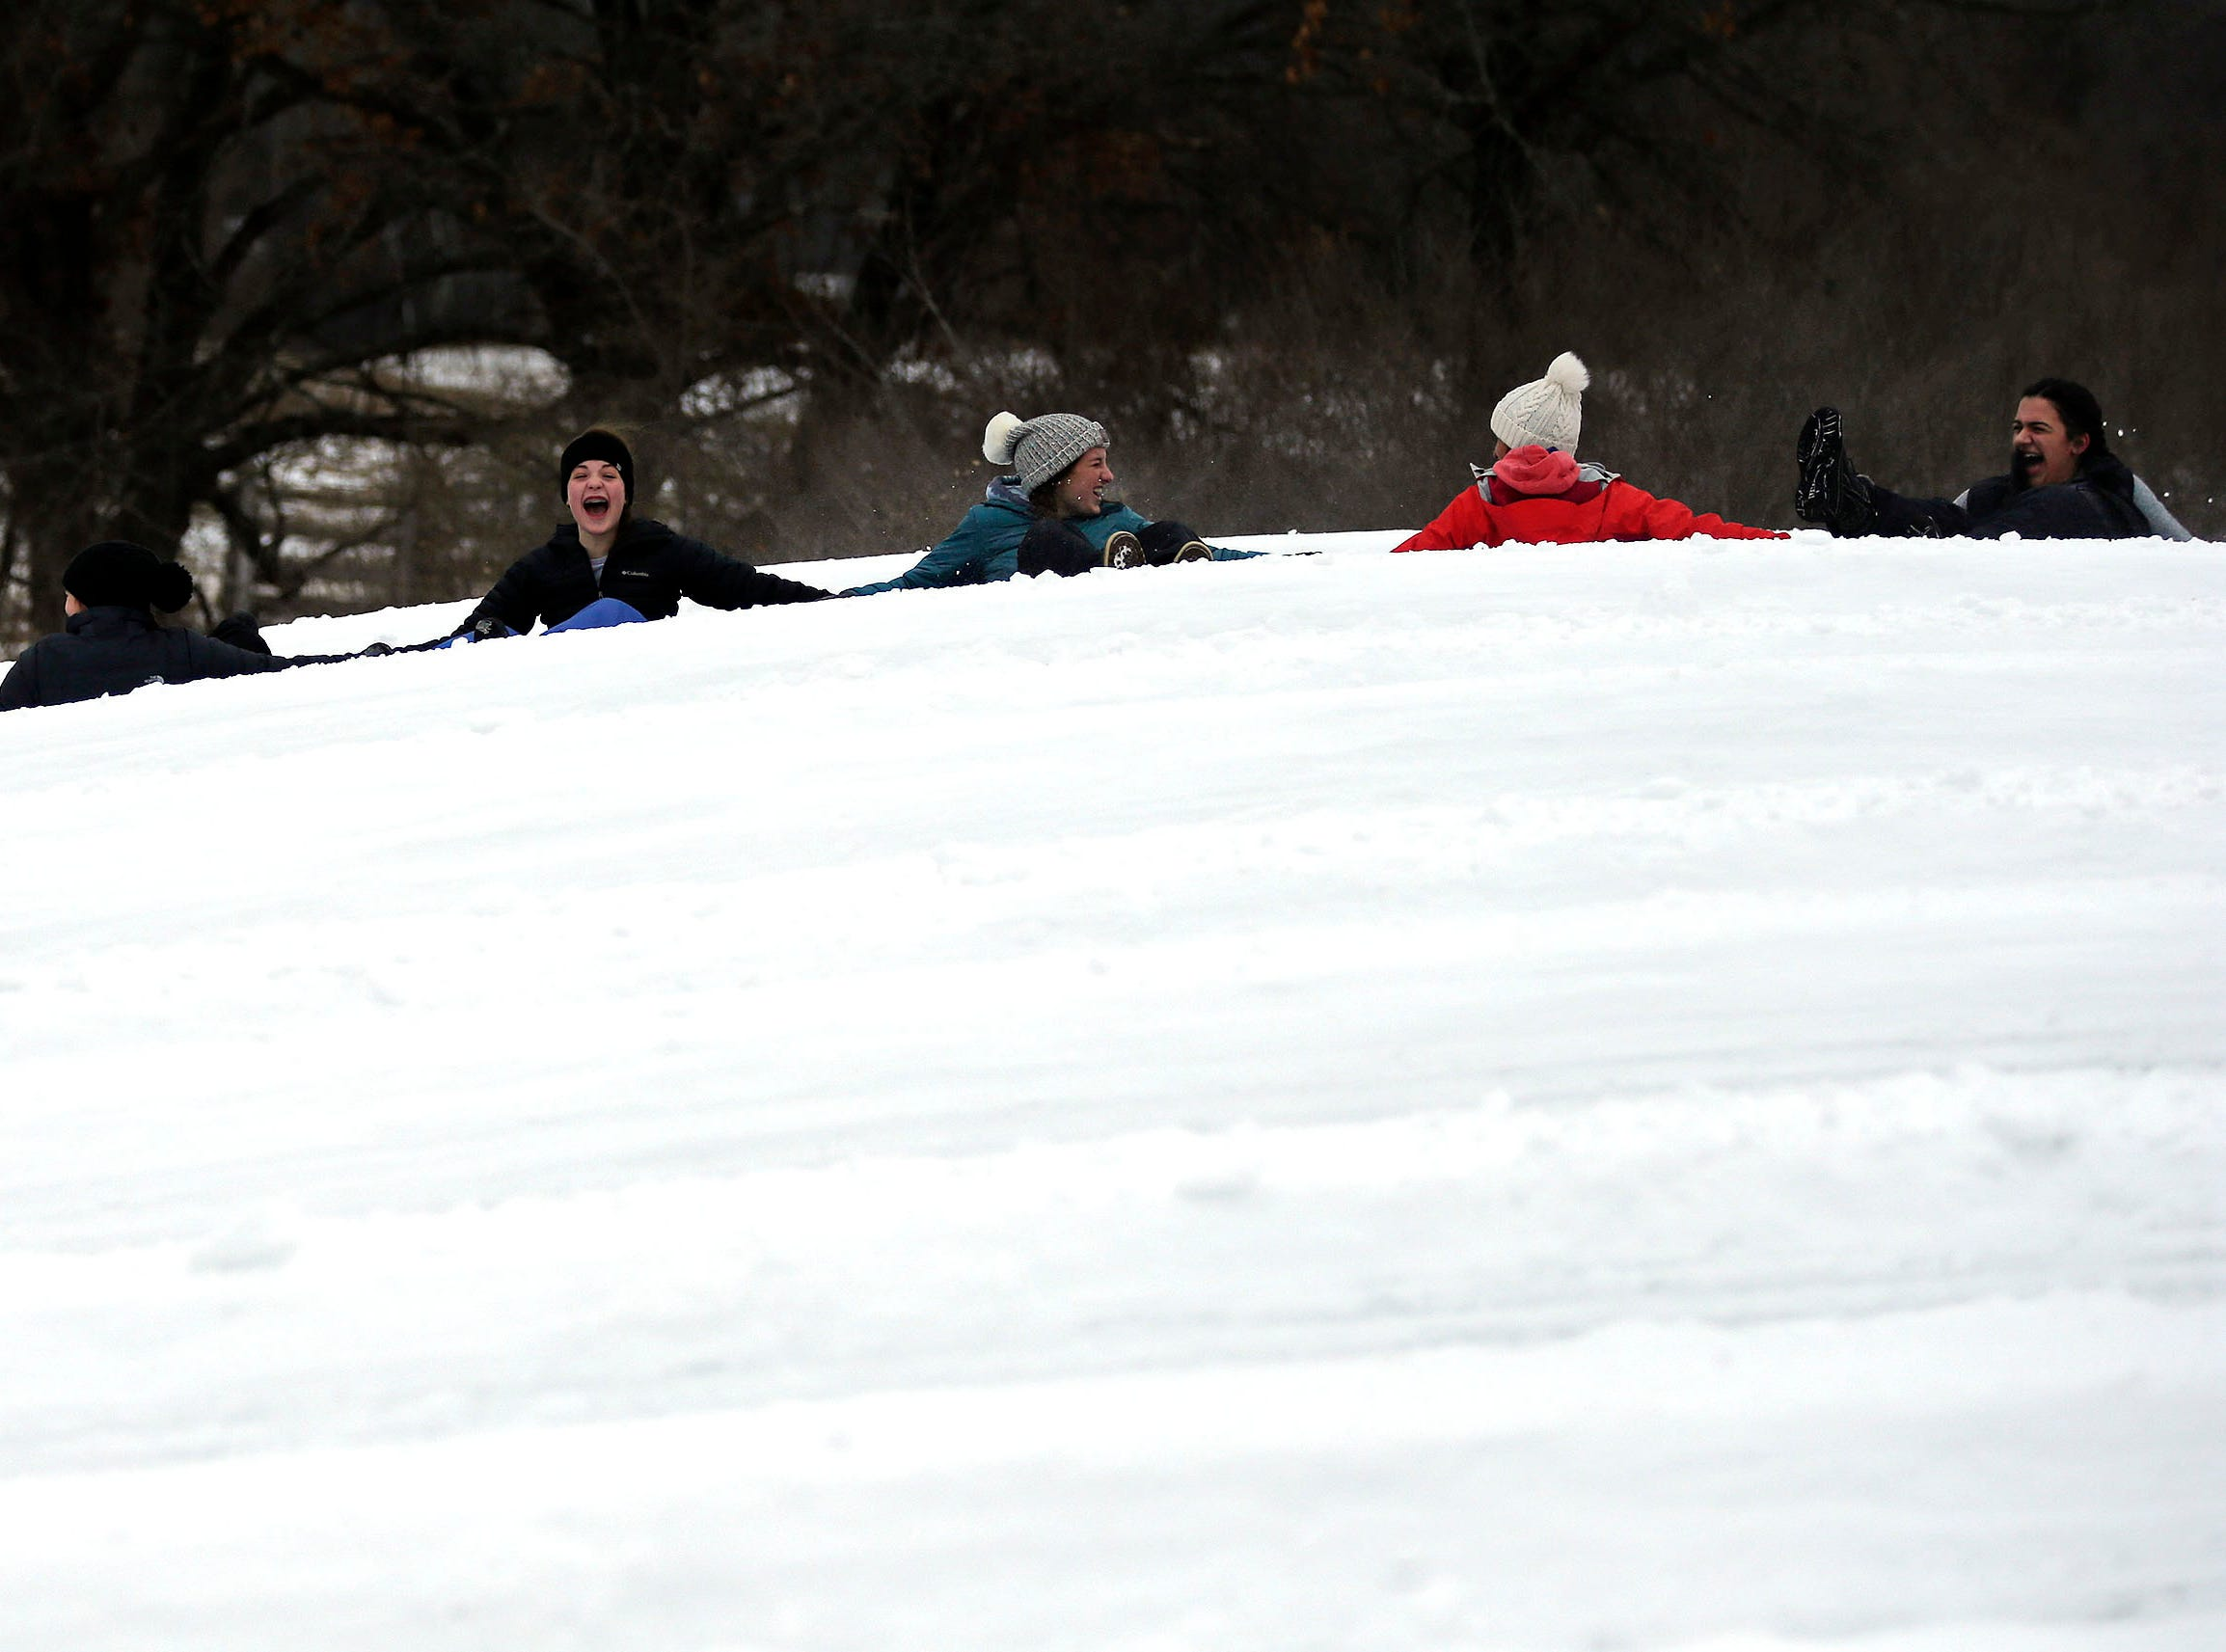 A party of 12 friends from Neenah celebrate a birthday as they go tubing at Nordic Mountain Sunday, January 13, 2019, near Wild Rose, Wis.